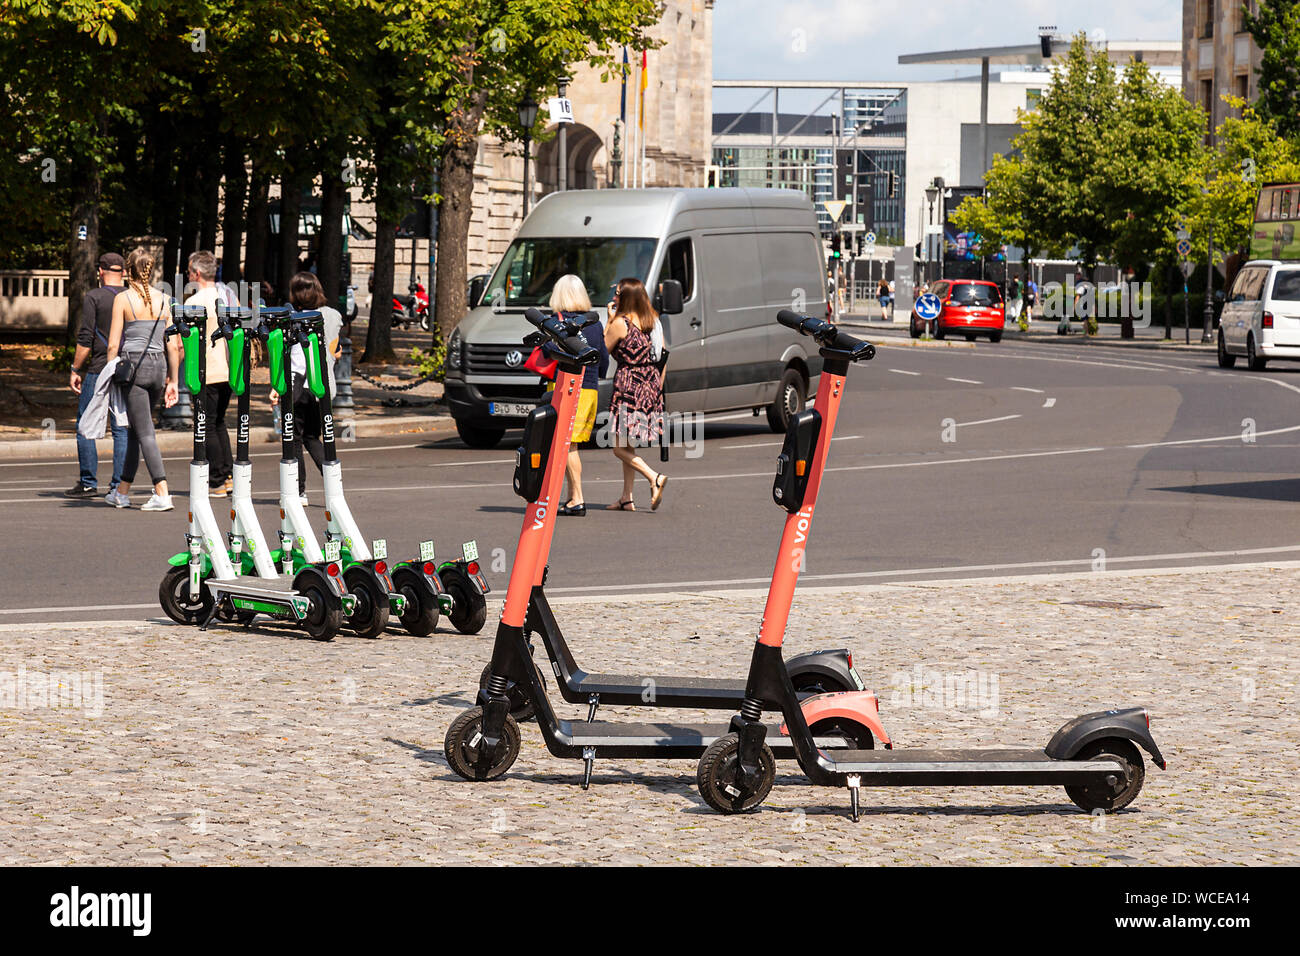 E-Scooters, pedestrians and cars, GERMANY, BERLIN. Stock Photo